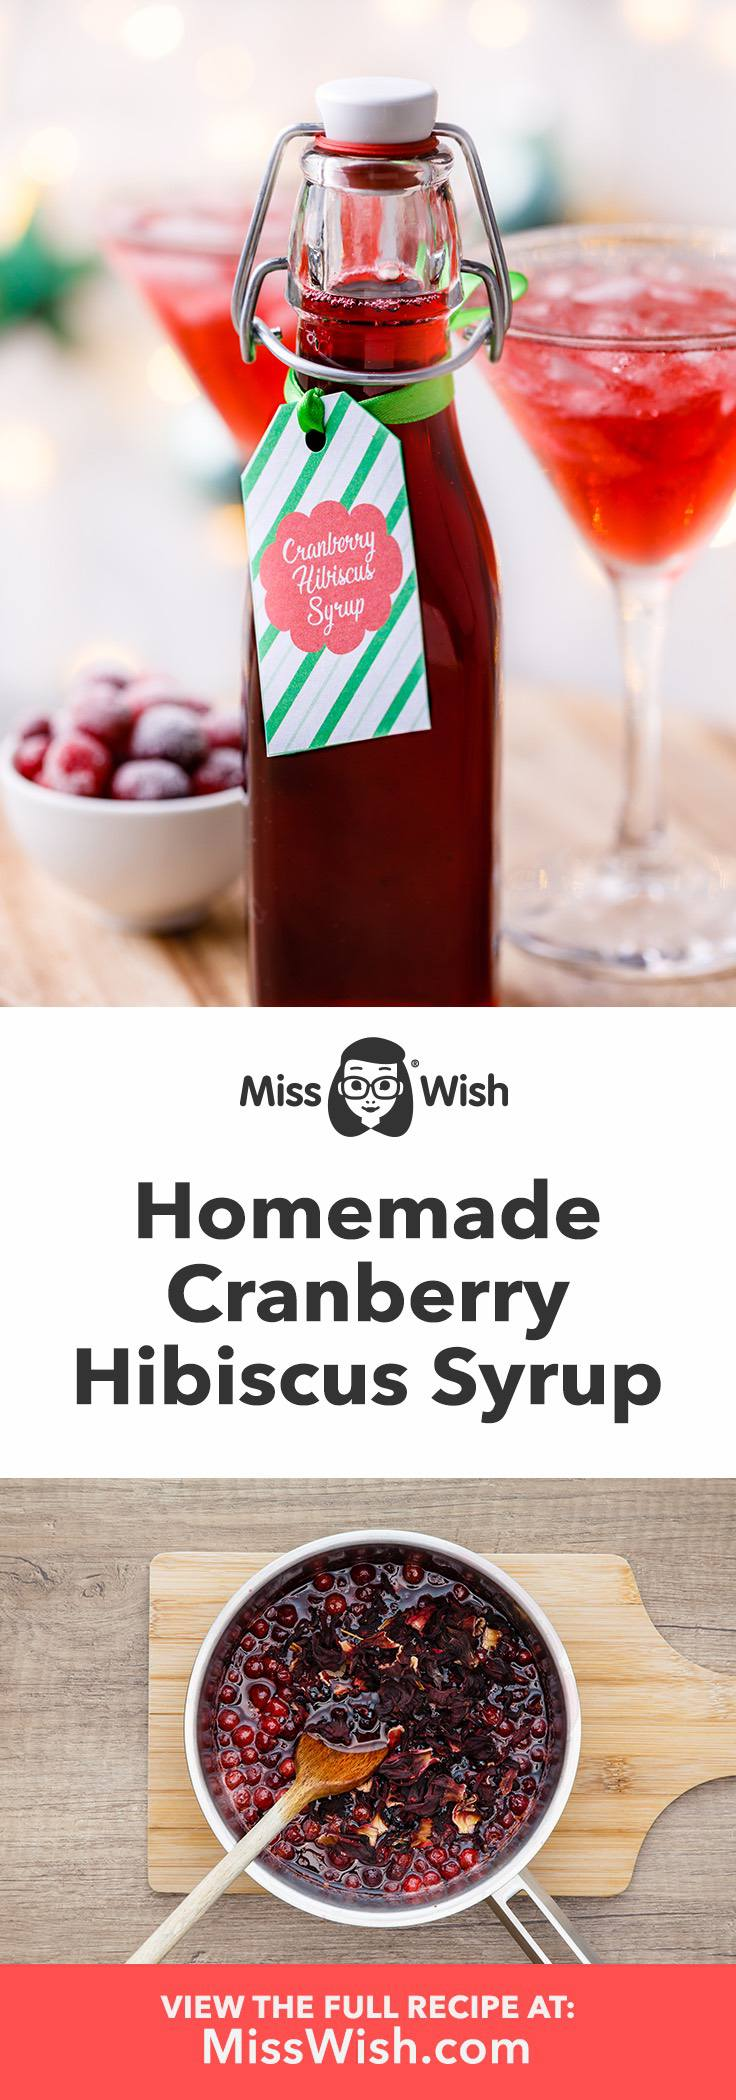 How to make homemade cranberry hibiscus syrup- for drinks, ice cream and desserts.